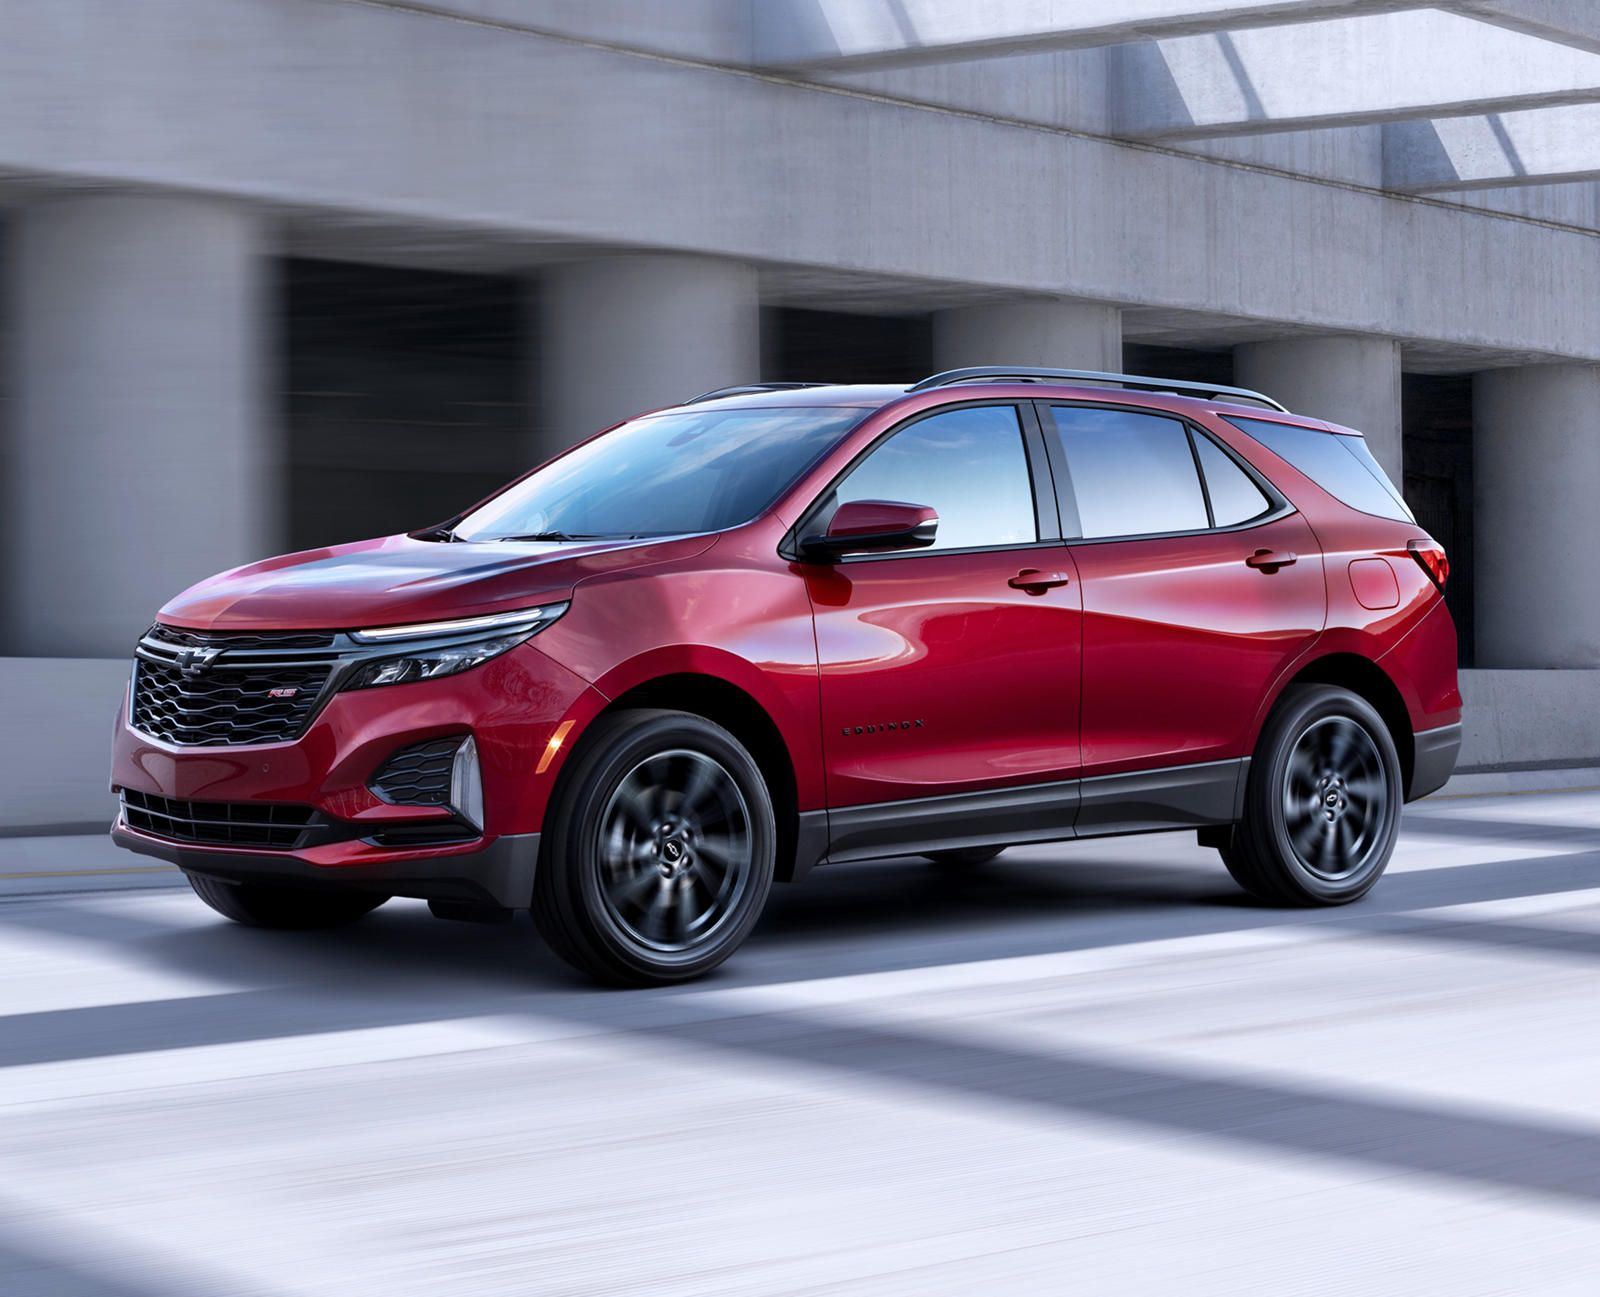 There S Already An Issue With The 2021 Chevy Equinox Chevy Equinox Chevrolet Equinox Chevrolet